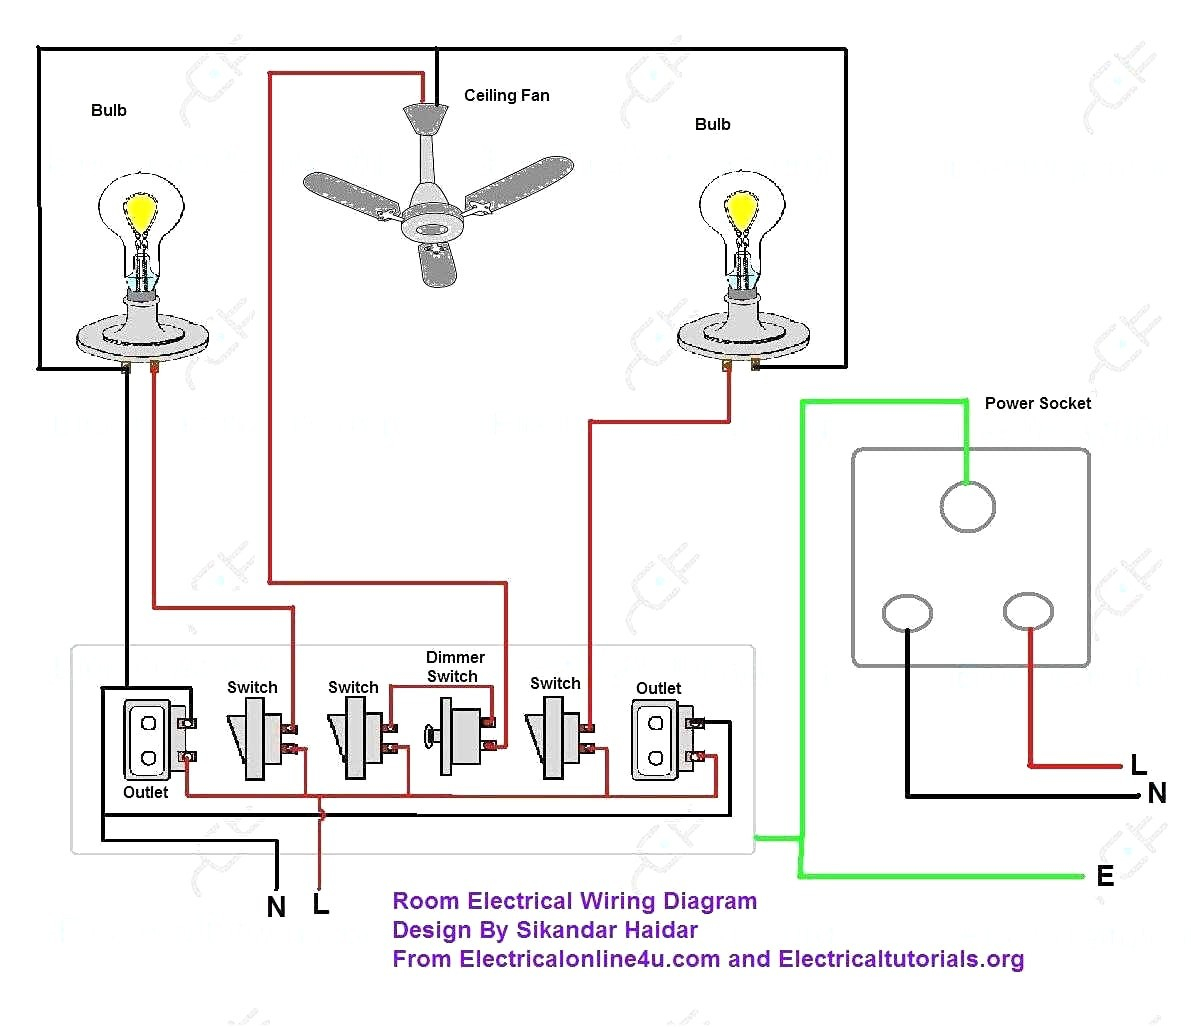 Electrical Wiring Diagrams Electrical Wiring A House Diagram Wiring Diagram Review